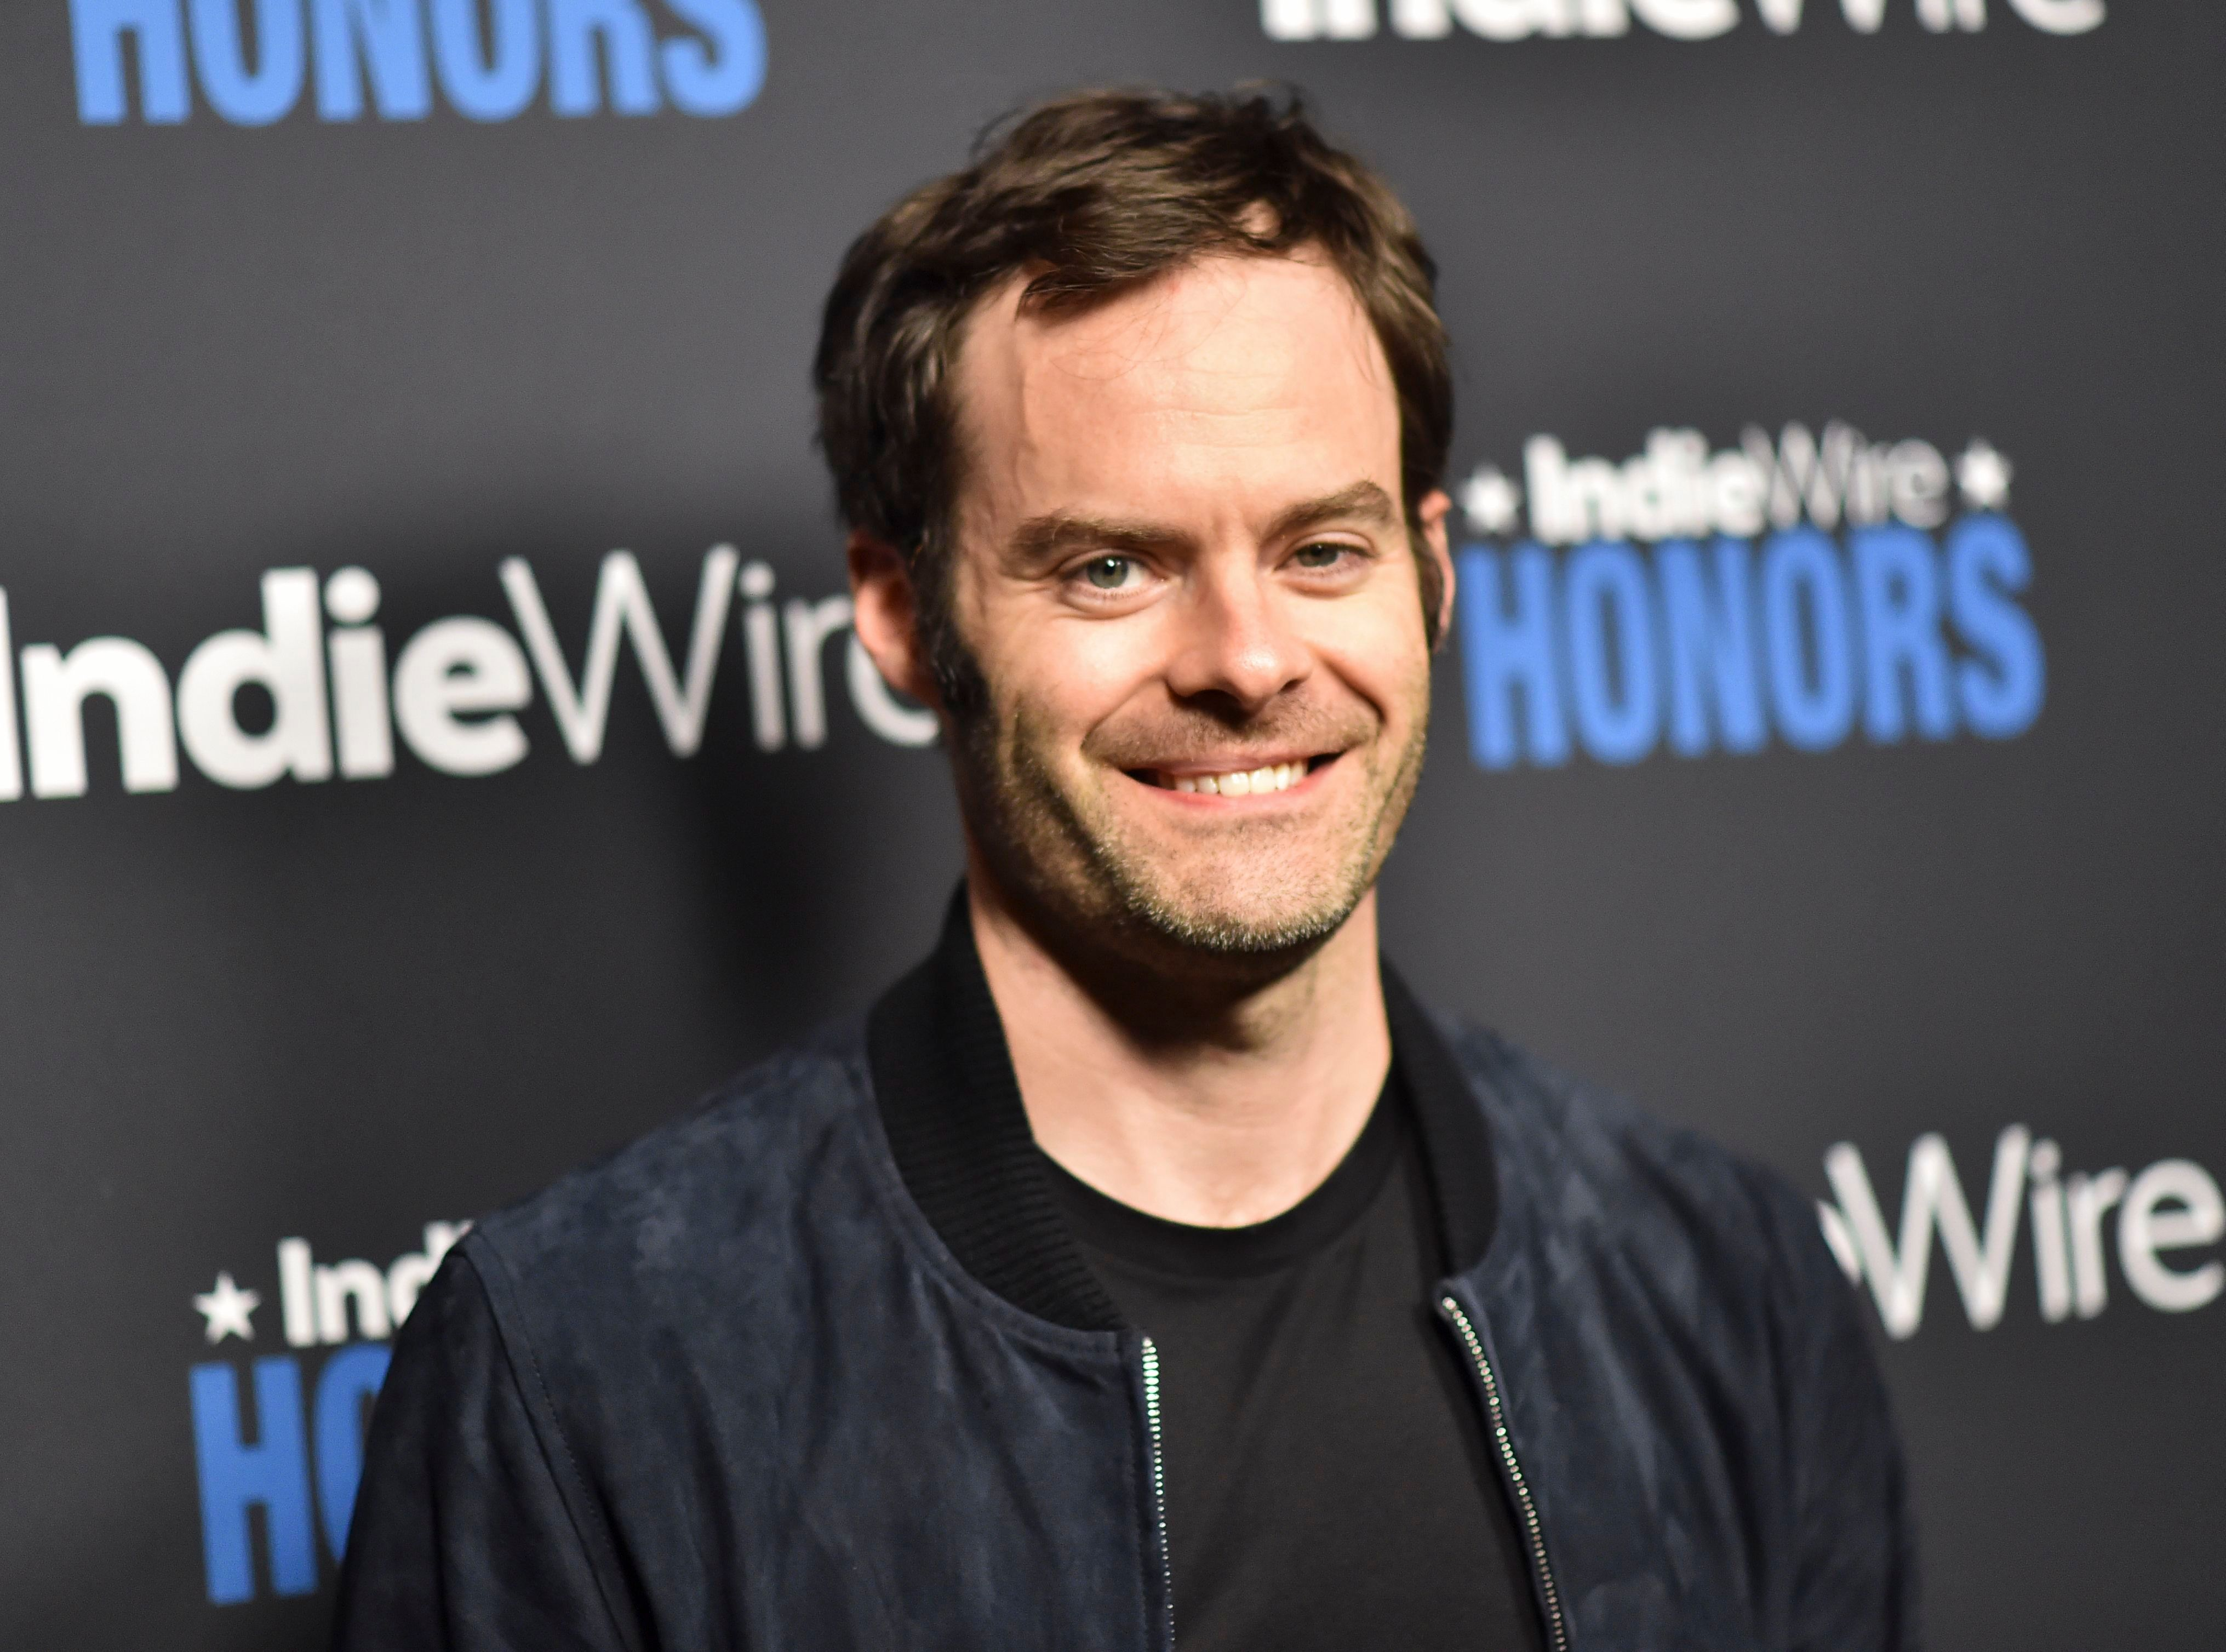 Bill Hader: When FilmStruck Announced Its Closure 'It Was Like a Family Member Died' — IndieWire Honors